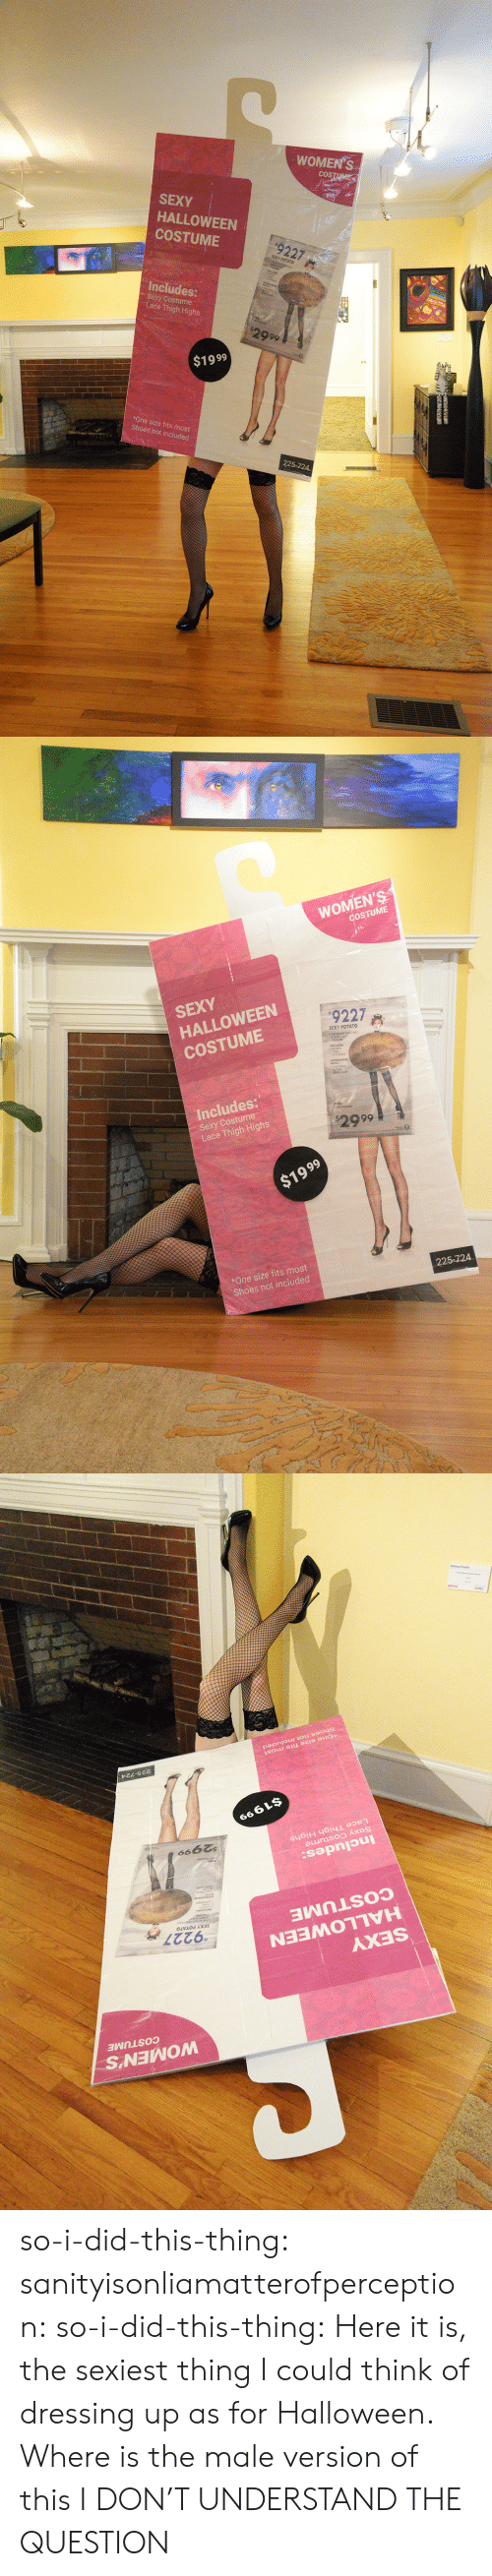 cos: WOMEN'S  cOS  SEXY  HALLOWEEN  COSTUME  #9227  SEXY POTATO  Includes:  Sexy Costume  Lace Thigh Highs  2999  $1999  *One size fits most  Shoes not included  225-724   WOMEN'S  COSTUME  SEXY  HALLOWEEN  COSTUME  #92272  SEXY POTATO  Includes:  Sexy Costume  Lace Thigh Highs  2999  $1999  *One size fits most  Shoes not included  225-724   WOMEN'S  COSTUME  SEXY  HALLOWEEN  COSTUME  '9227  SEXY POTATO  Includes:  Sexy Costume  Lace Thigh Highs  $2999  $1999  *One size fits most  Shoes not included  225-724 so-i-did-this-thing:  sanityisonliamatterofperception: so-i-did-this-thing: Here it is, the sexiest thing I could think of dressing up as for Halloween.  Where is the male version of this  I DON'T UNDERSTAND THE QUESTION